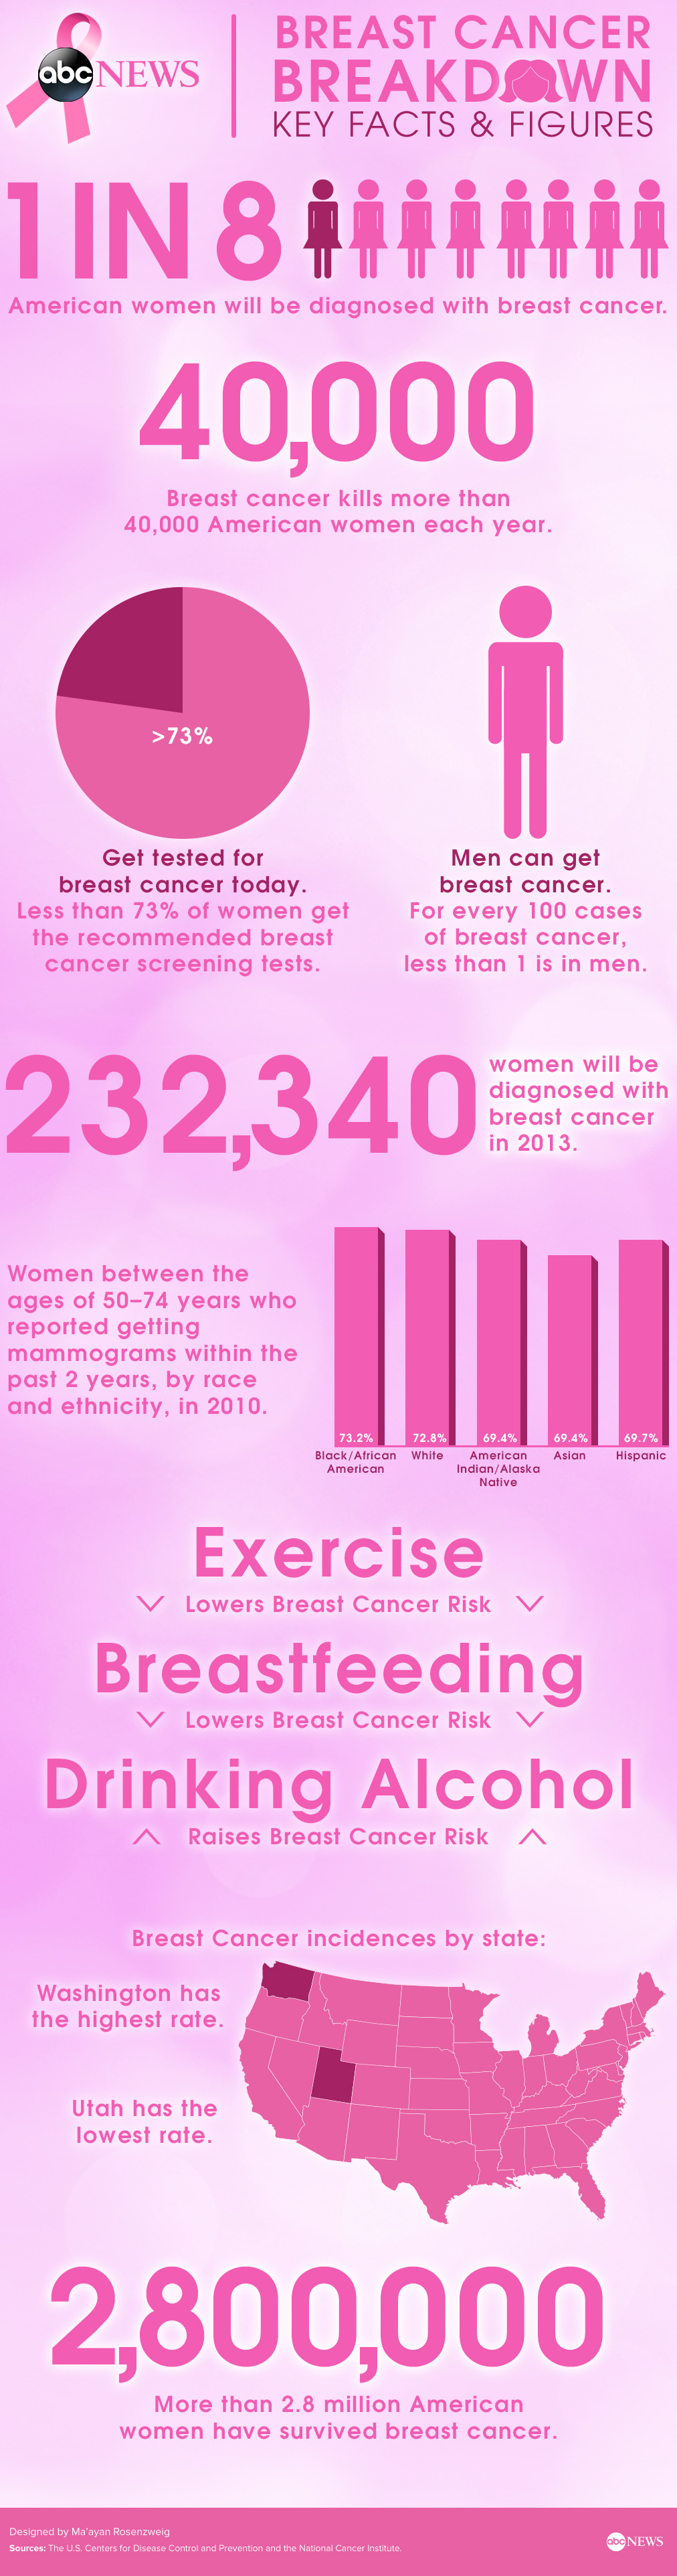 7. Shocking Breast Cancer Figures